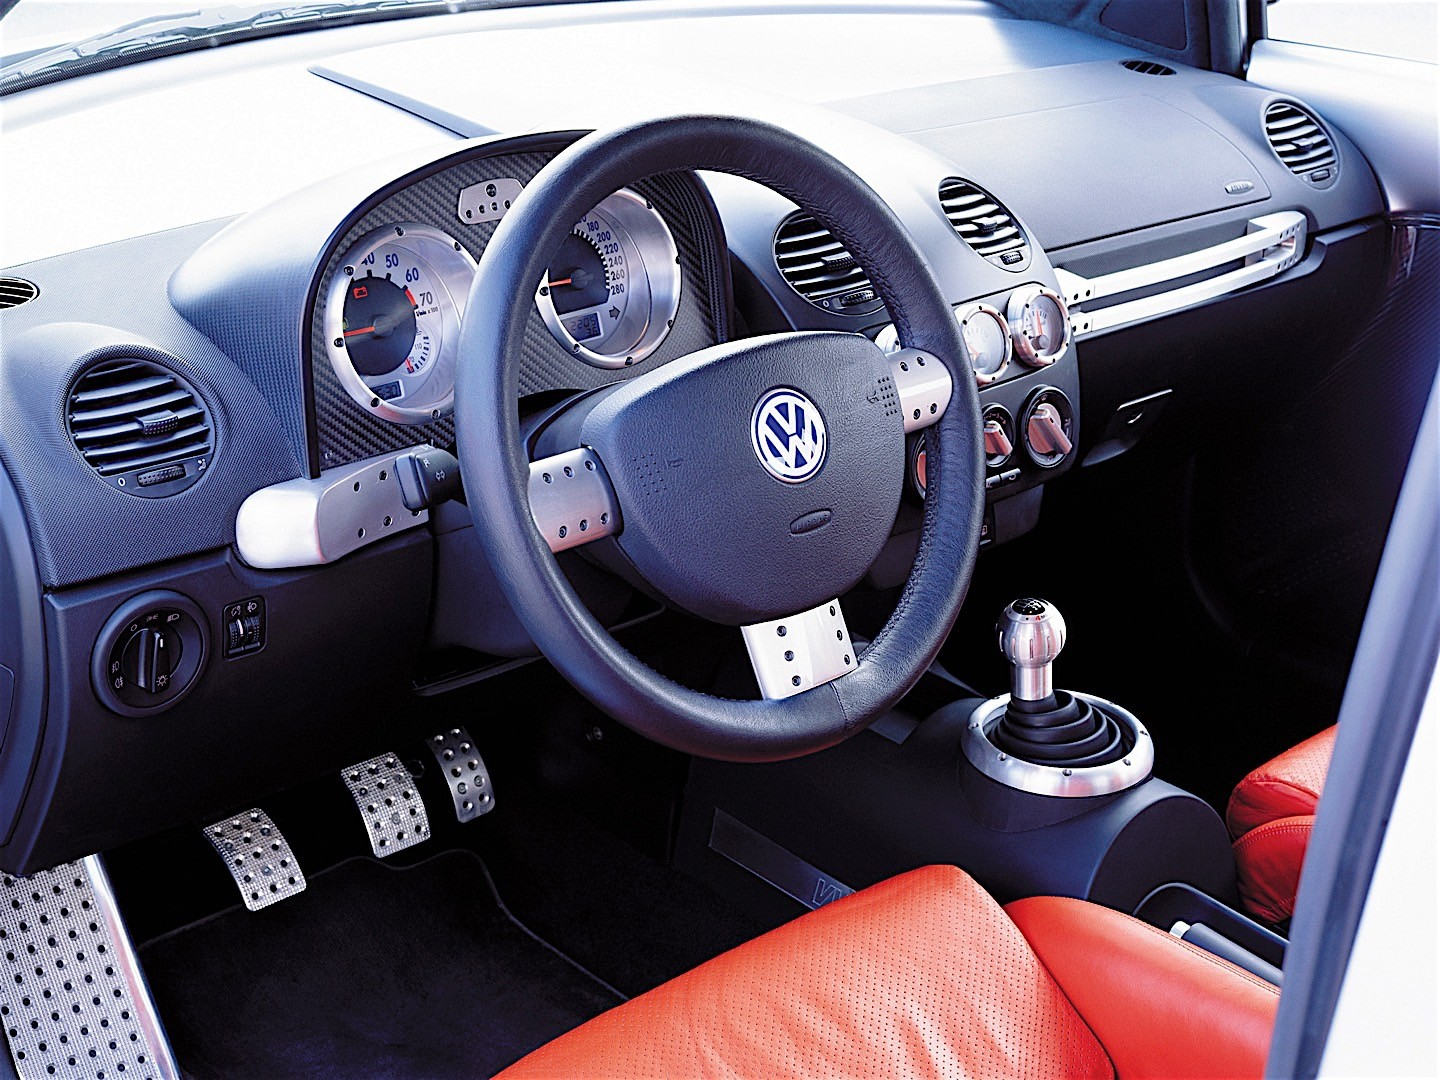 VOLKSWAGEN BEETLE RSI specs & photos - 2001, 2002 - autoevolution